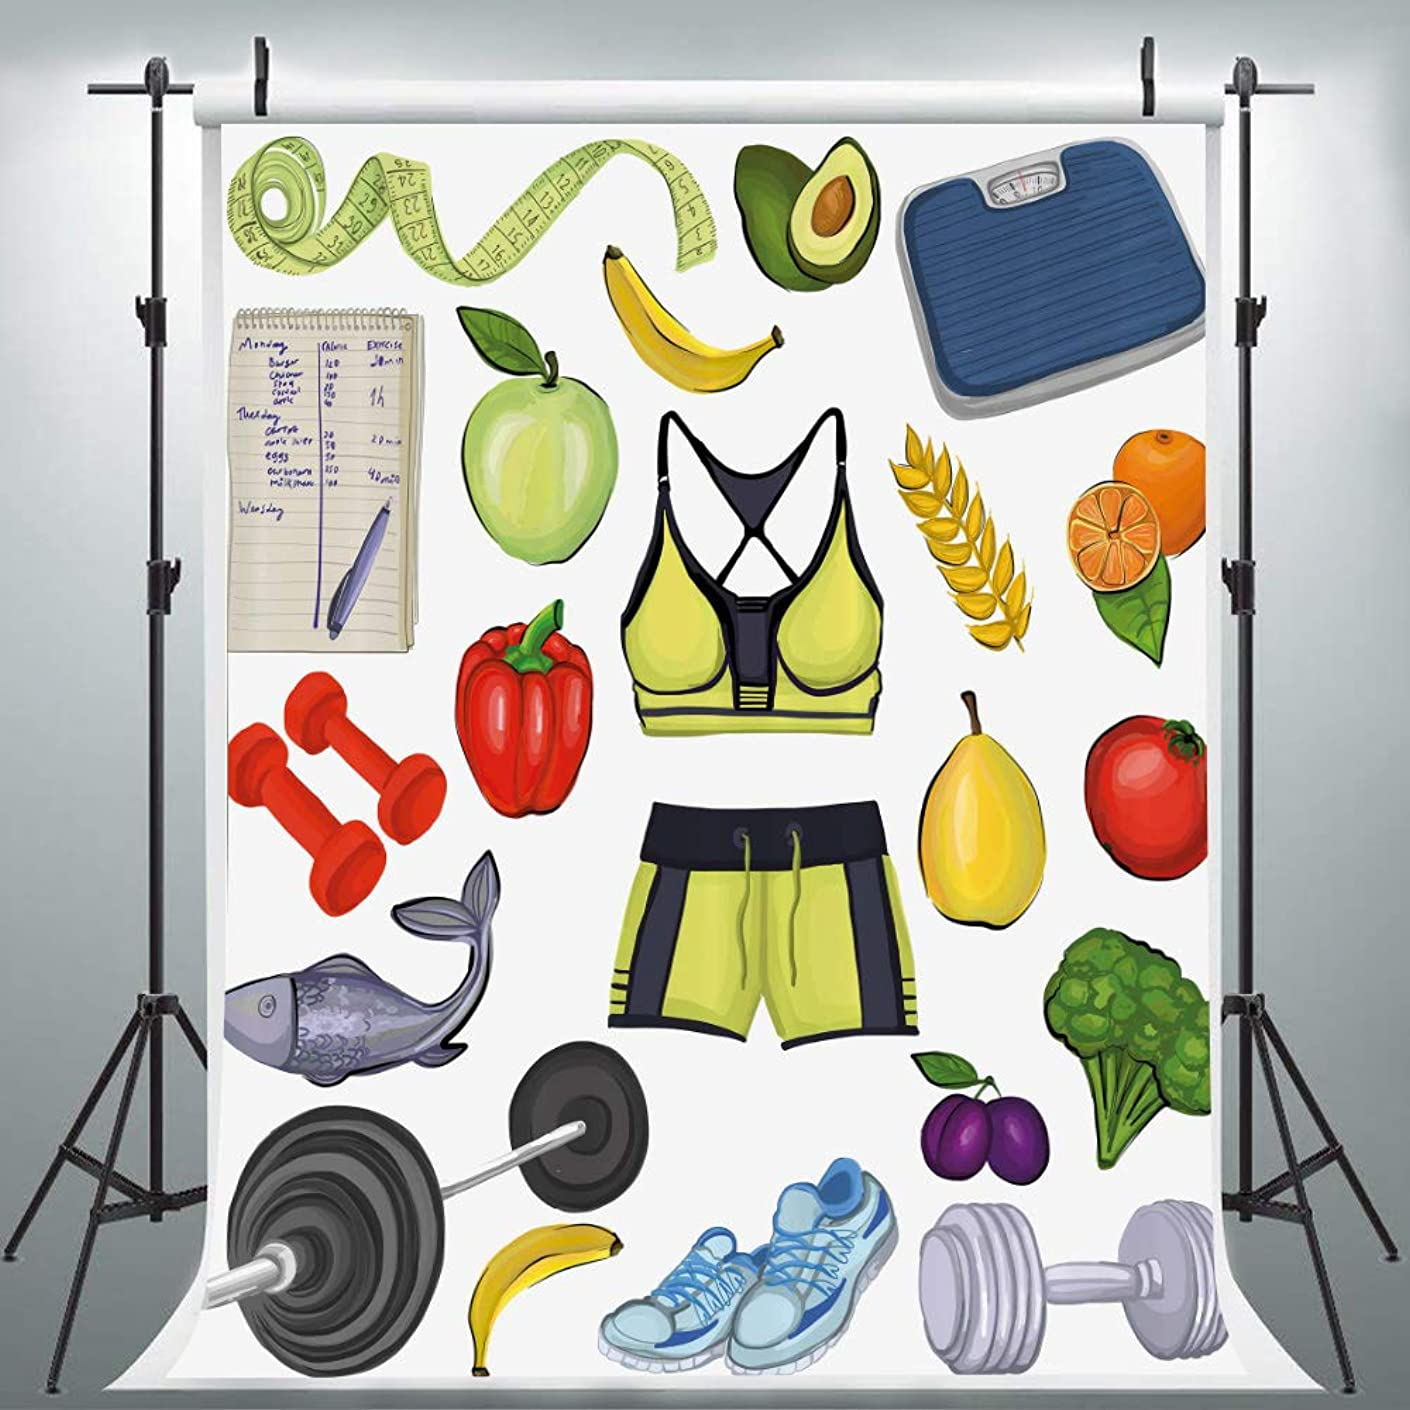 Fitness Gym Work Out Photography Backdrop for Party, 5x7FT, Exercise Physical Training Diet Vegetables Background, Photo Booth Studio Props LYLU567